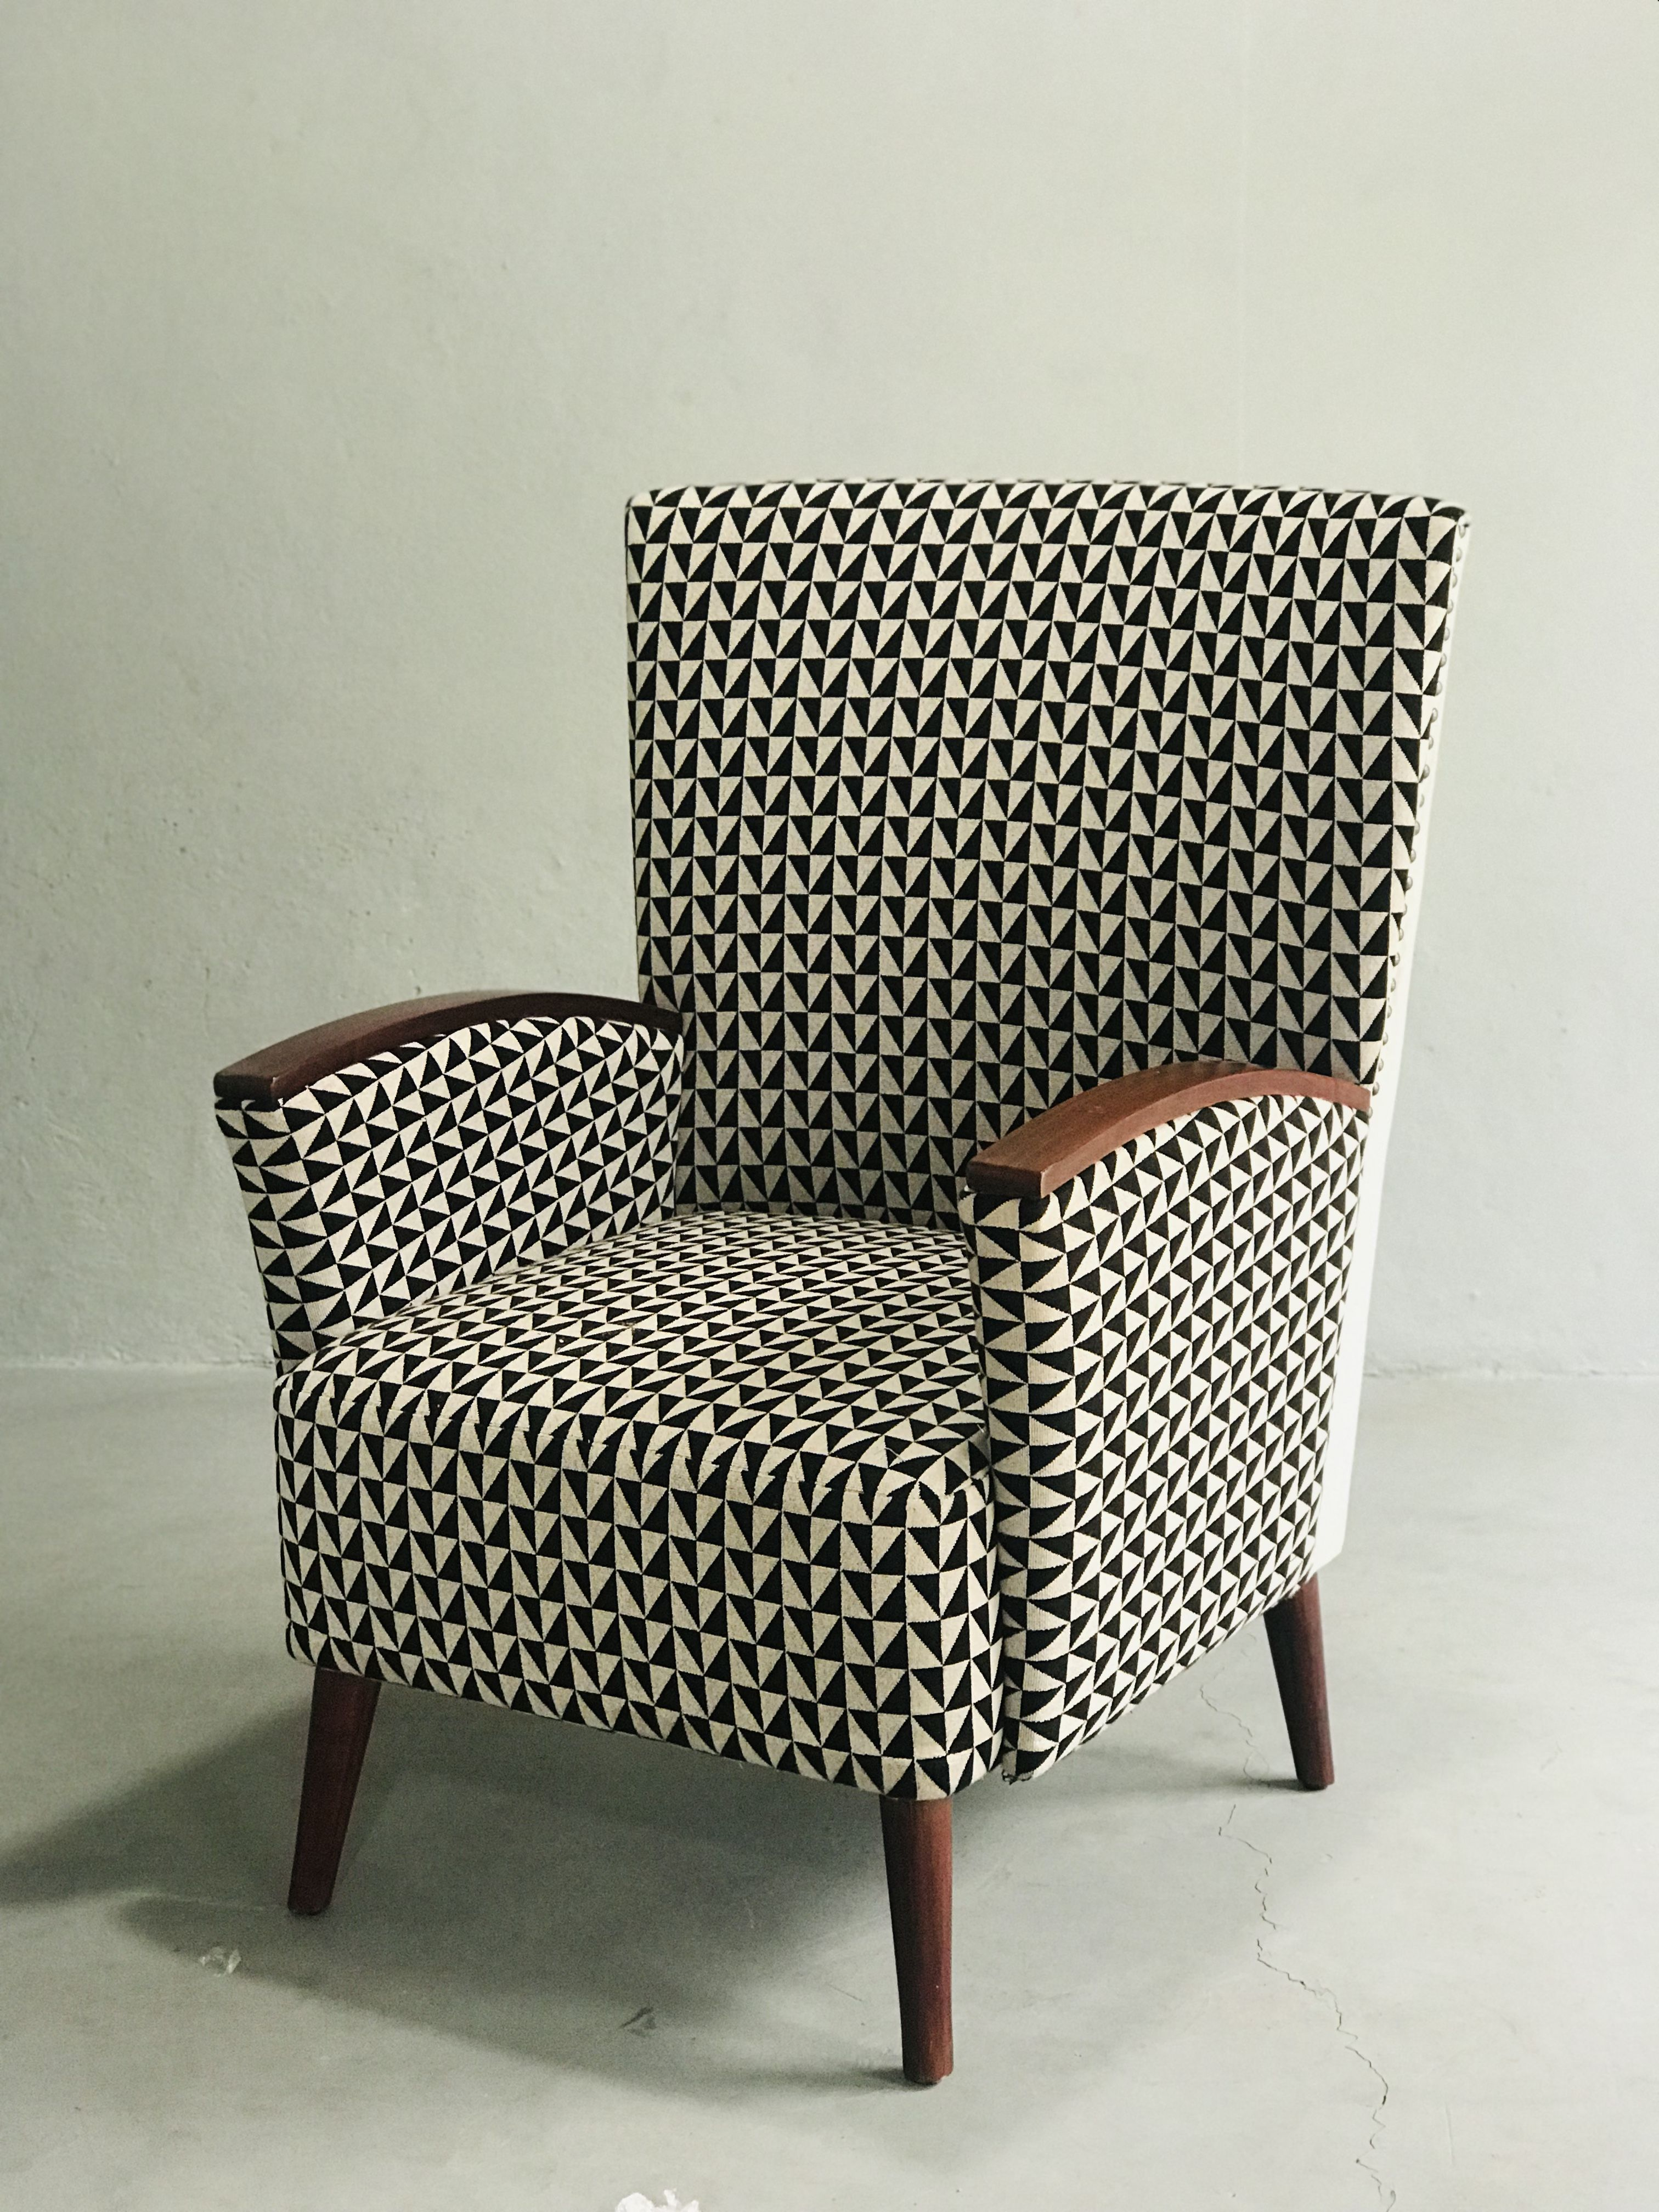 Pin by ORION on SO _ Chairs (With images) High back